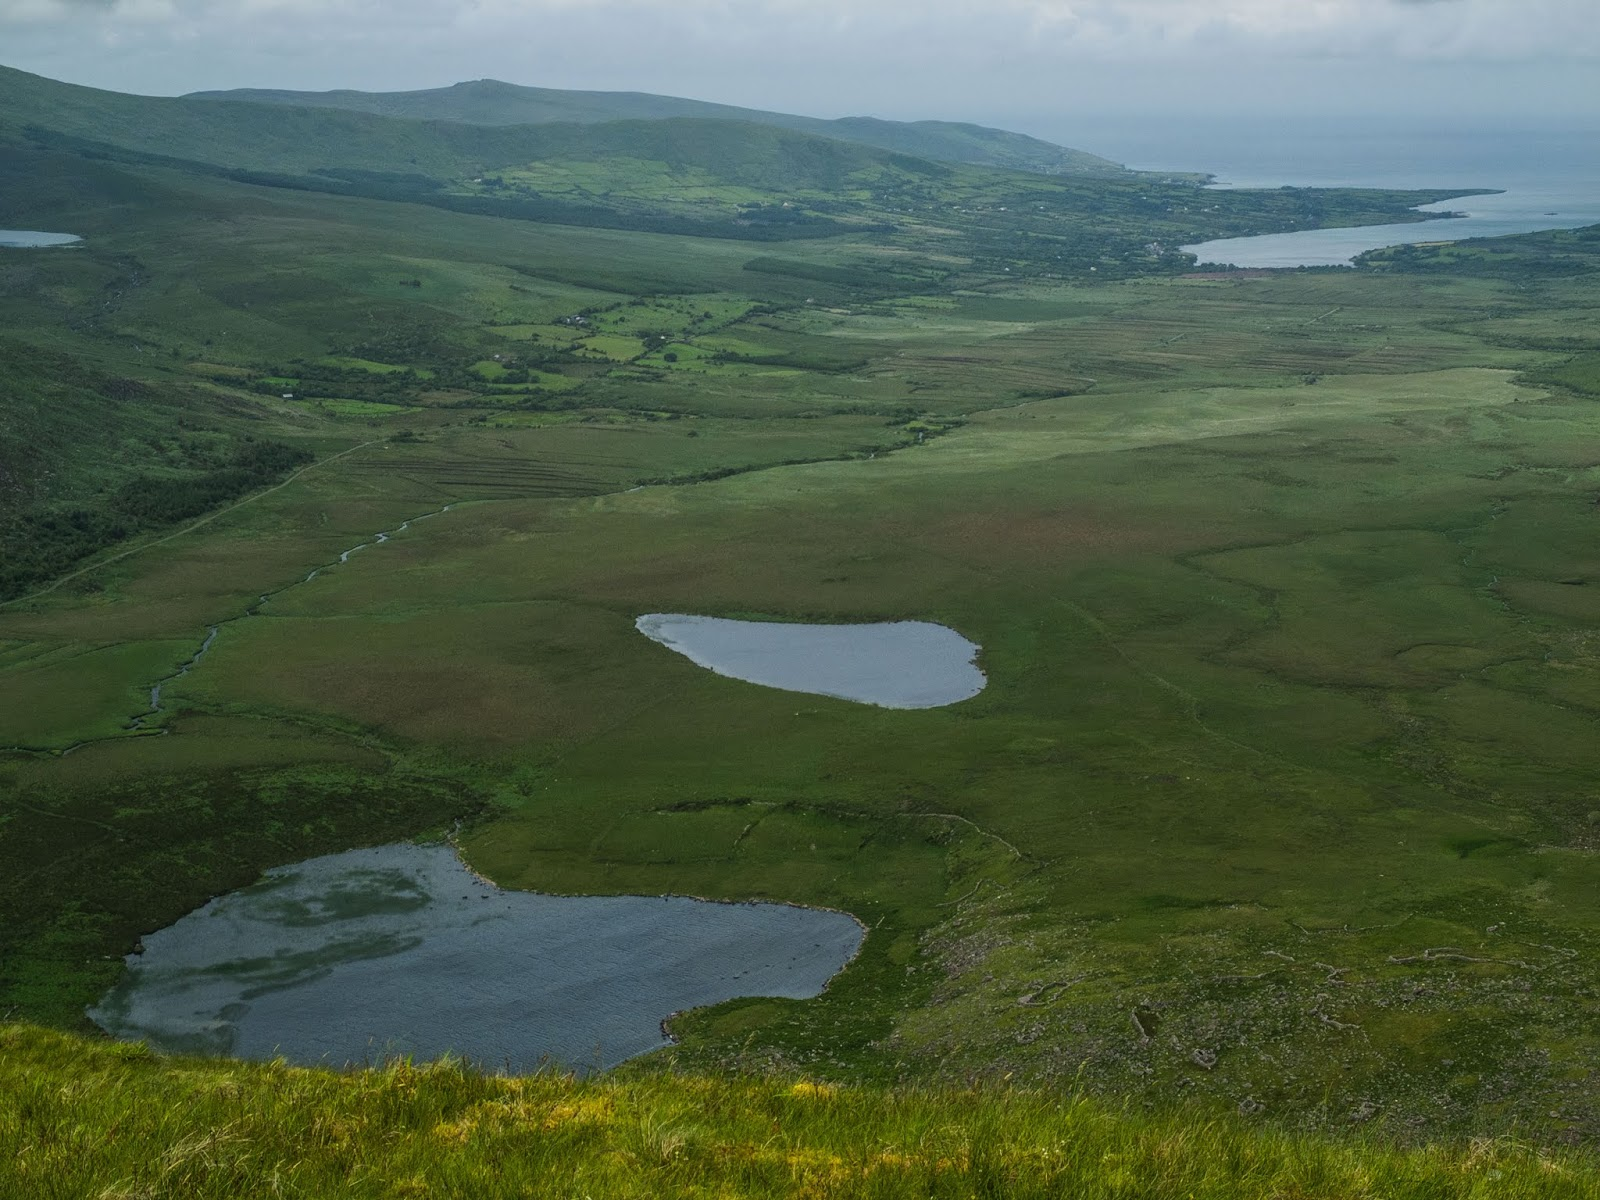 View of Clogharee Lough and Lough Atlea from Conor Pass in County Kerry.